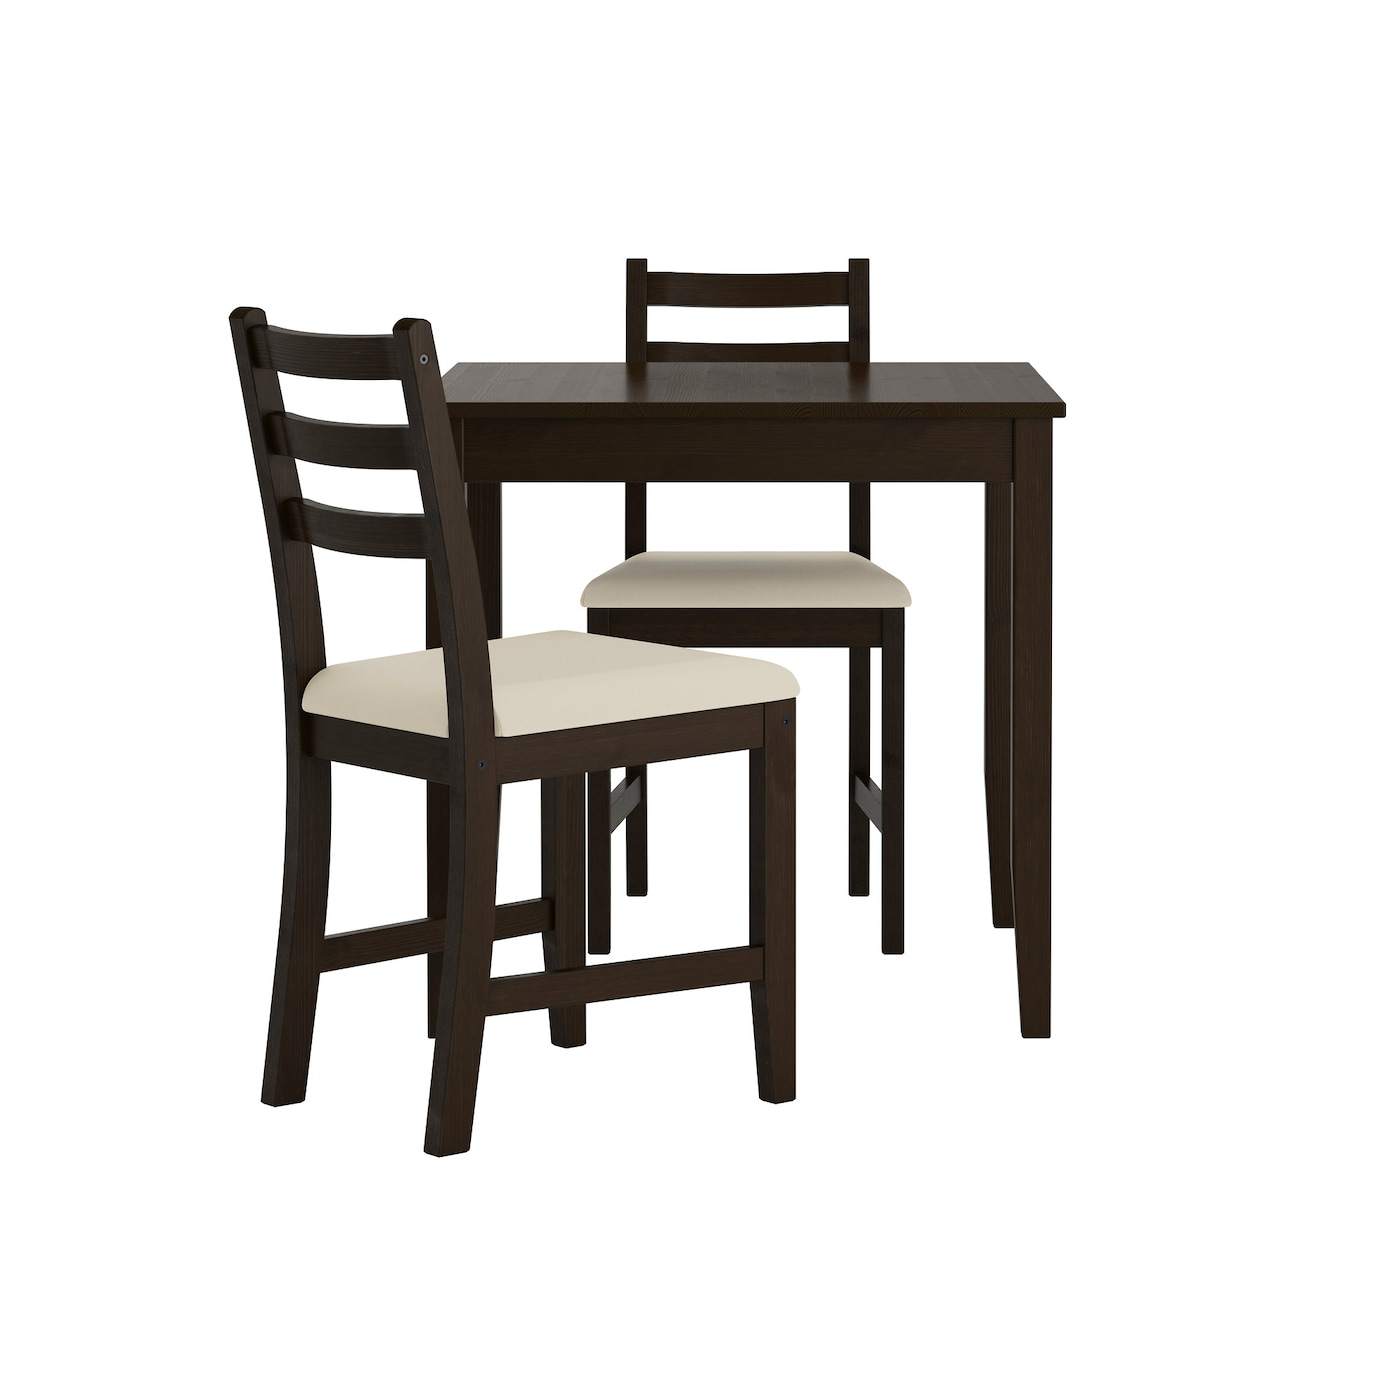 Dining table sets dining room sets ikea for Dining table and chairs